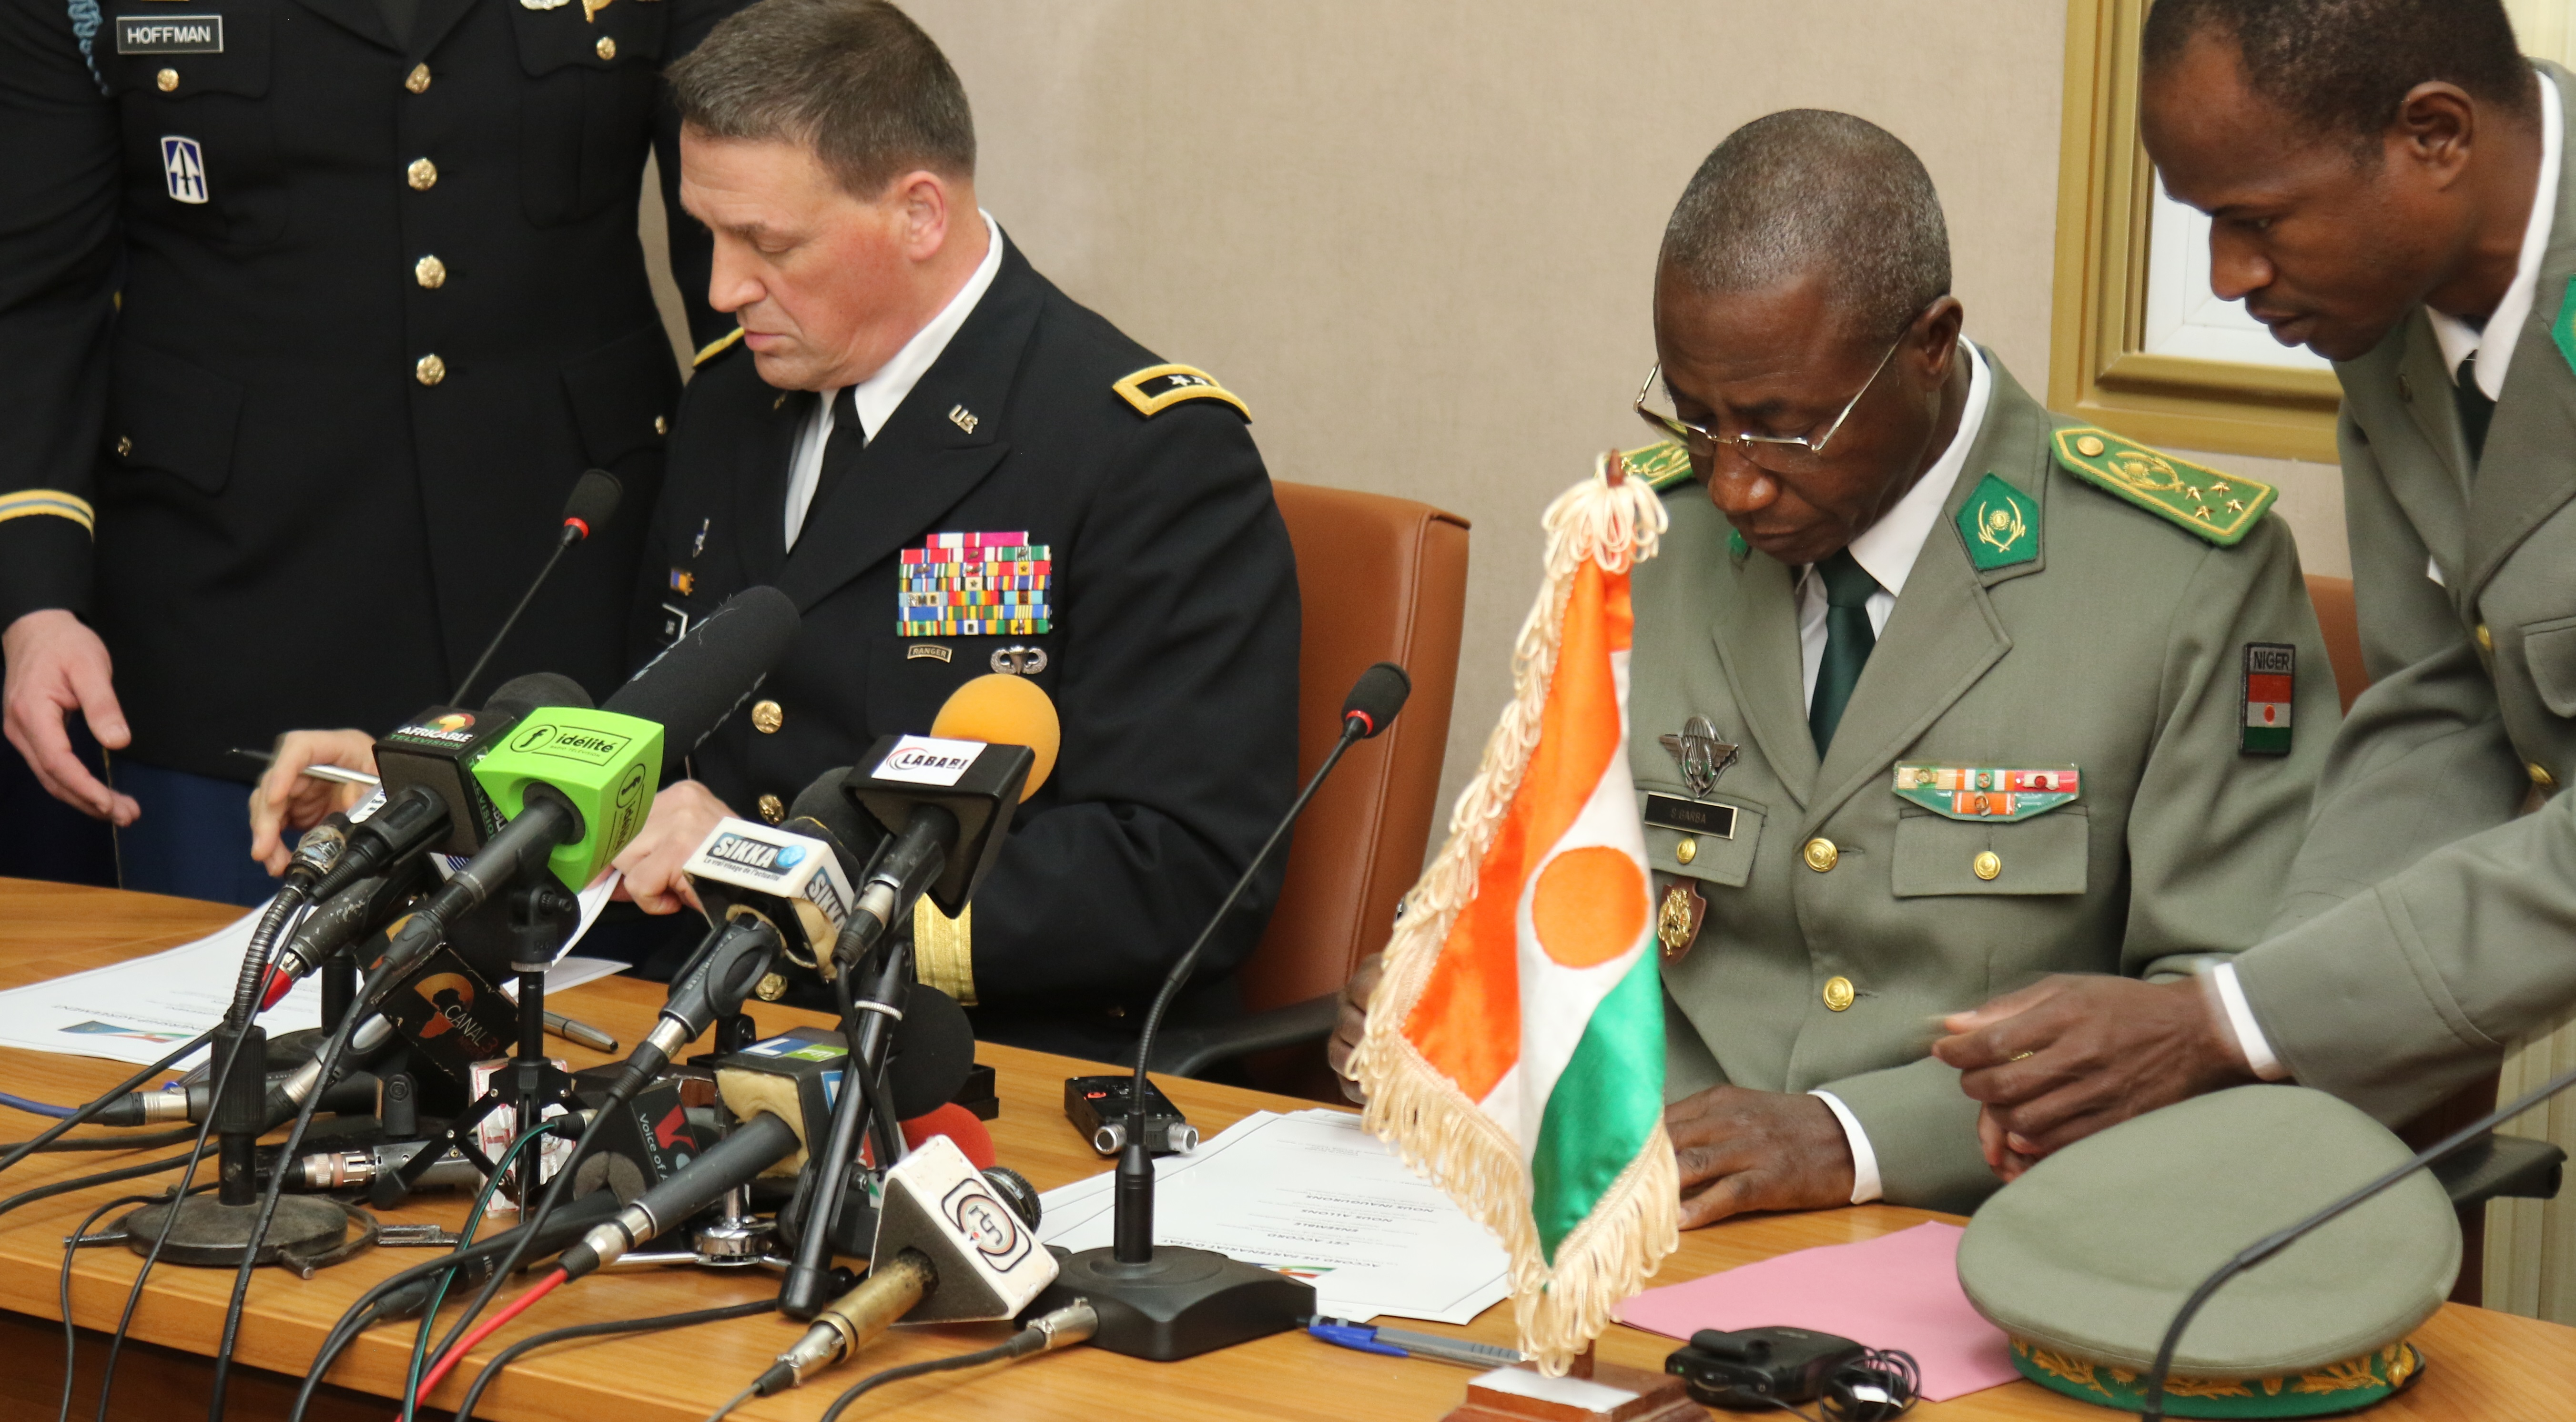 NIAMEY, Niger - Maj. Gen. Courtney P. Carr, the Adjutant General of Indiana, and Gen. Seyni Garba, Joint Chief of Staff of the Niger Armed Forces, sign a ceremonial partnership agreement during the State Partnership Program signing ceremony in Niamey, Niger. (Photo by Nate Herring, U.S. AFRICOM Public Affairs/Released)